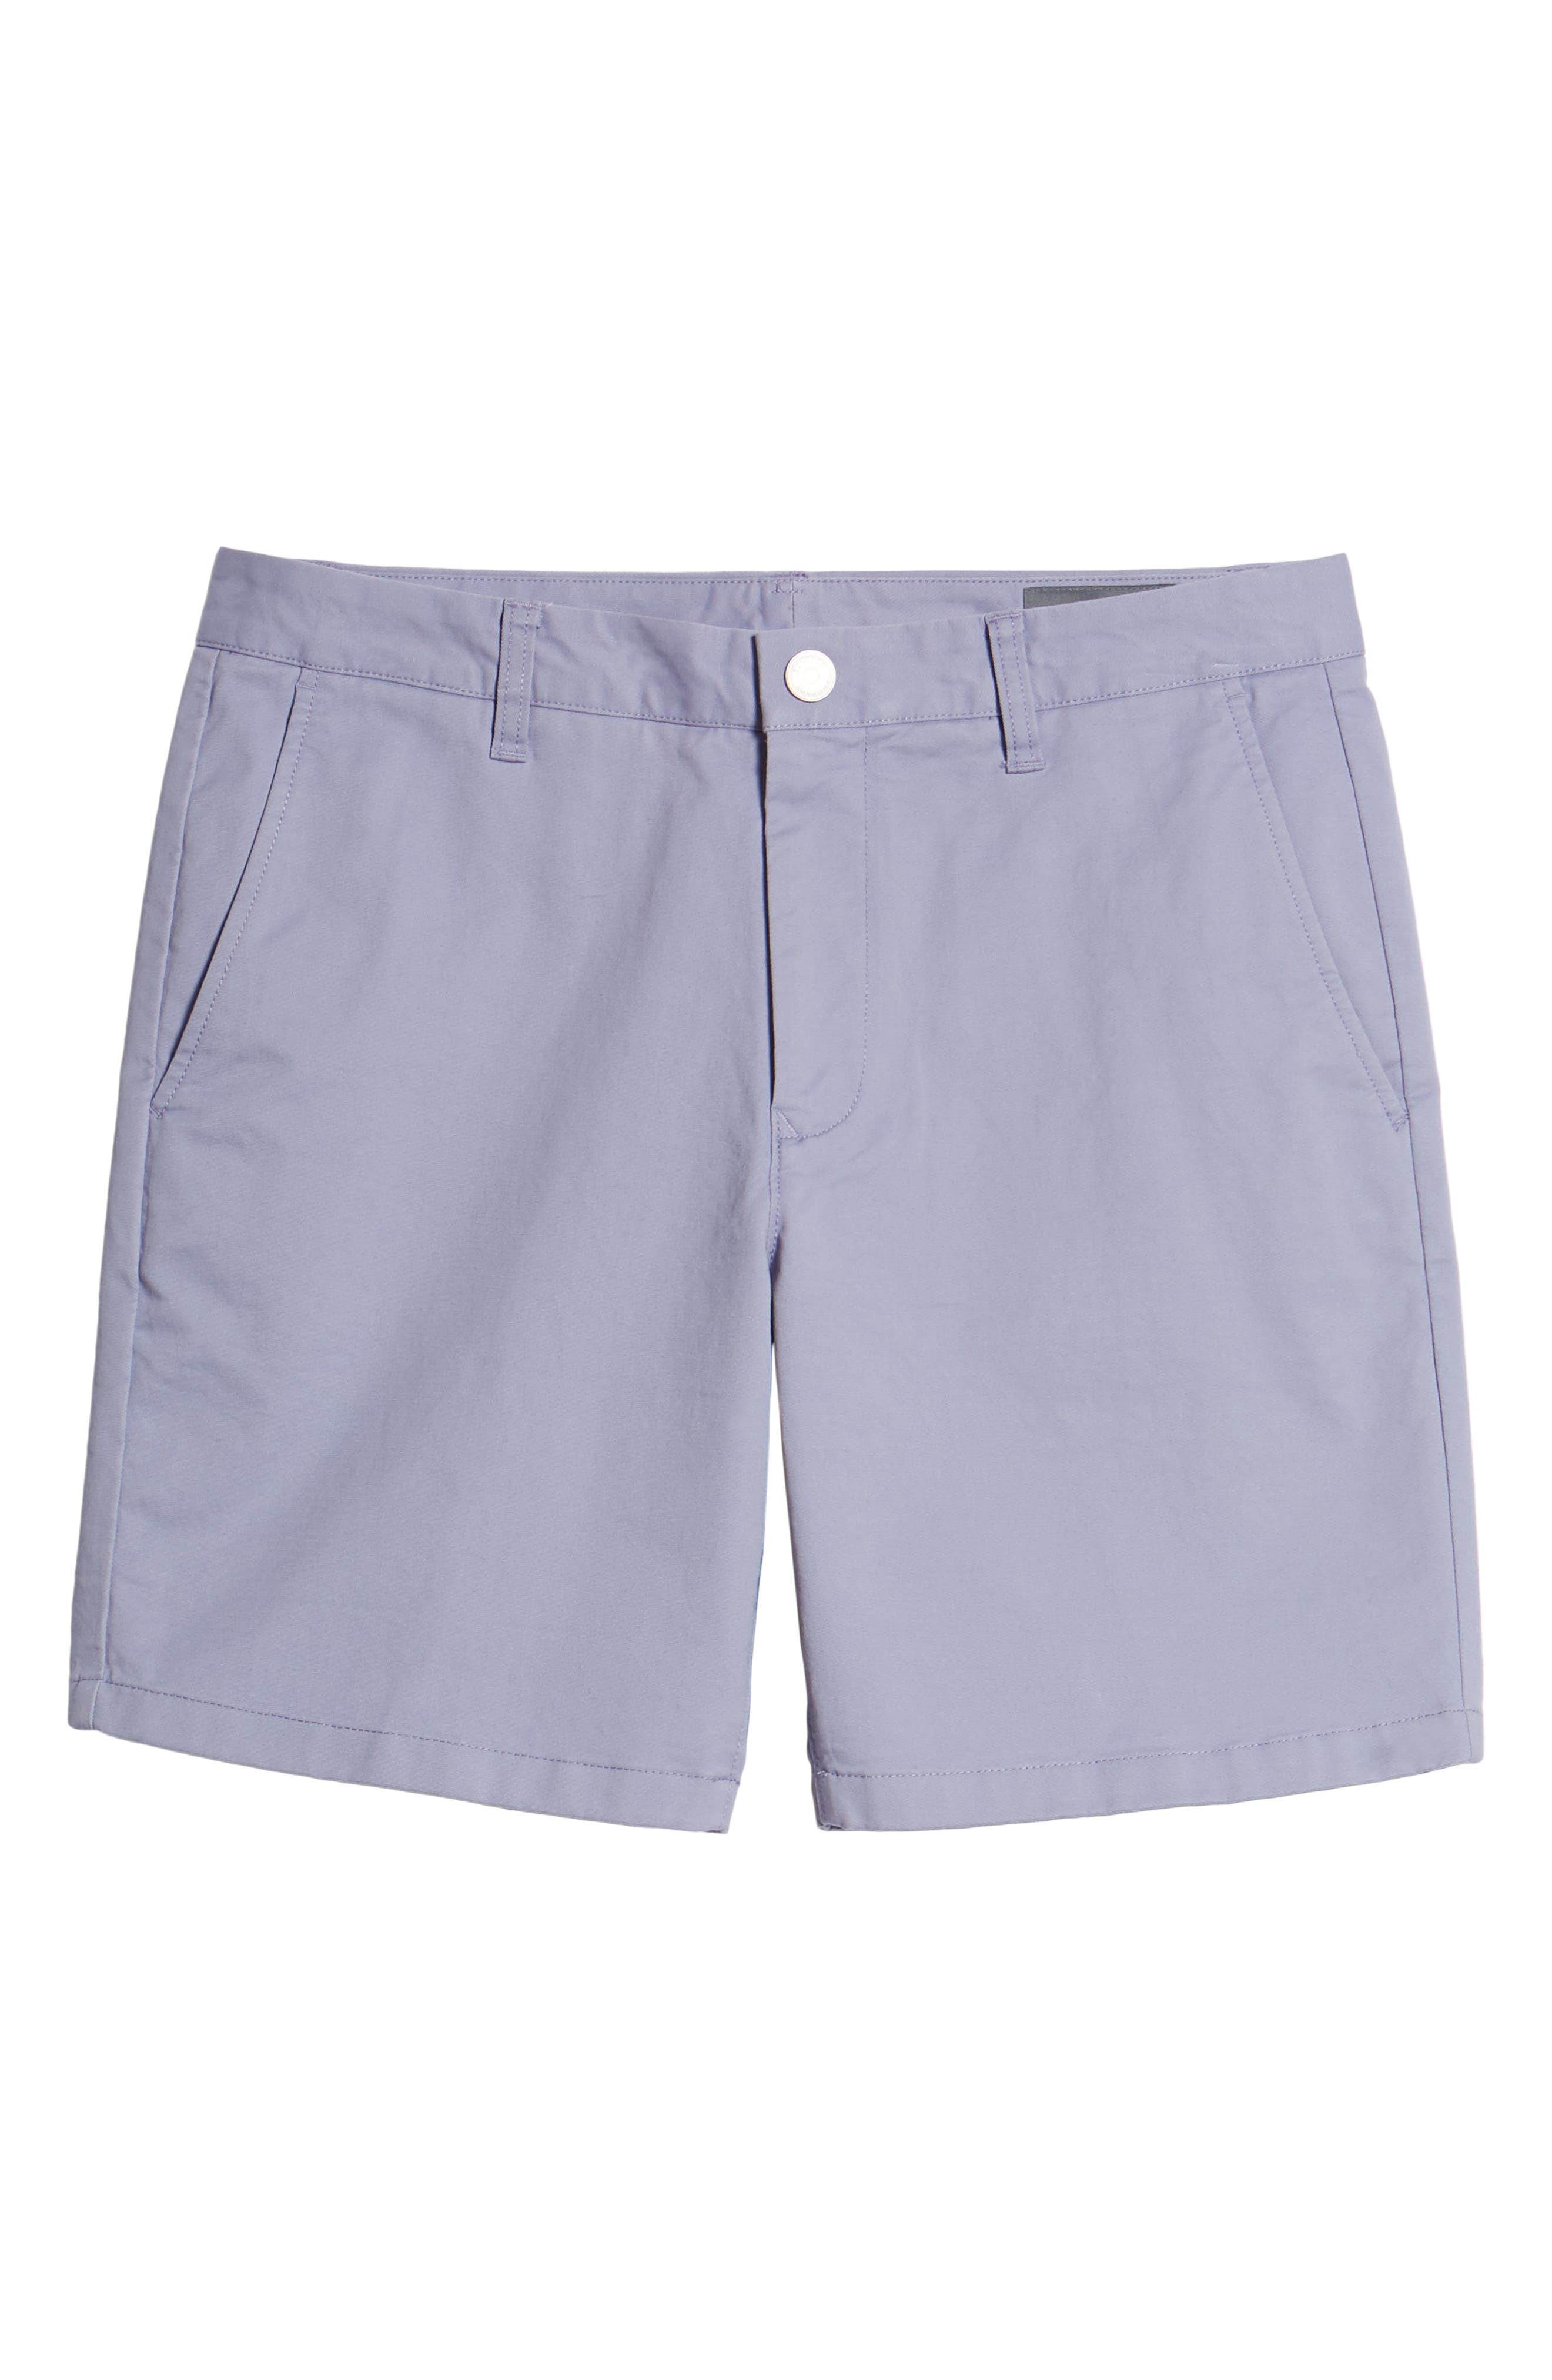 Stretch Chino 7-Inch Shorts,                             Alternate thumbnail 72, color,